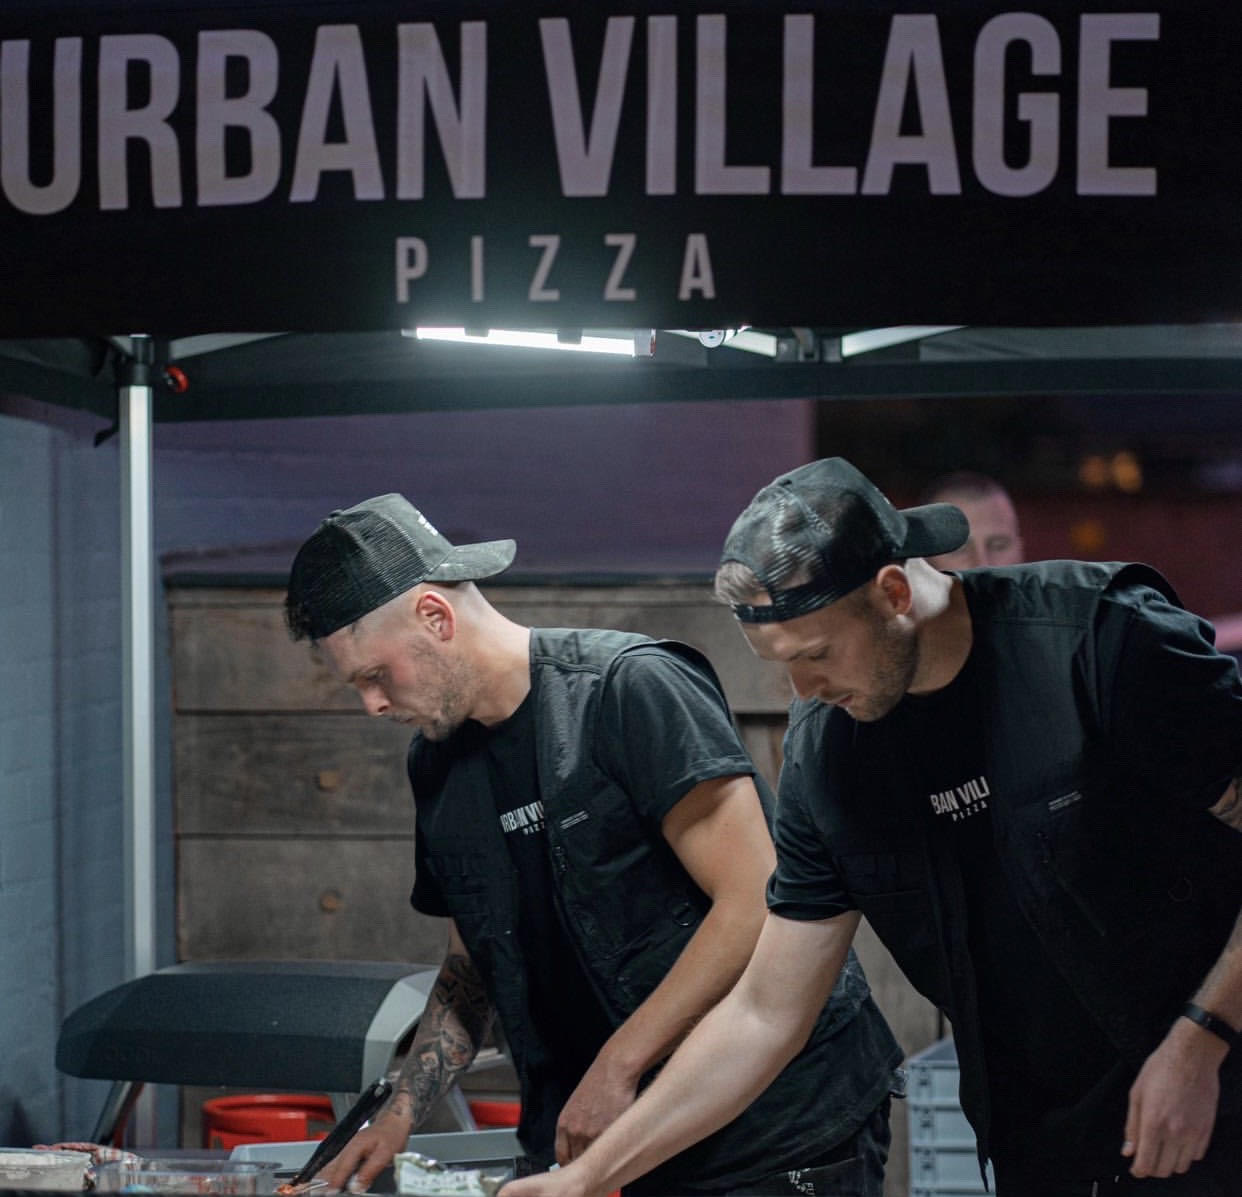 Read more about the article Urban Village Pizza